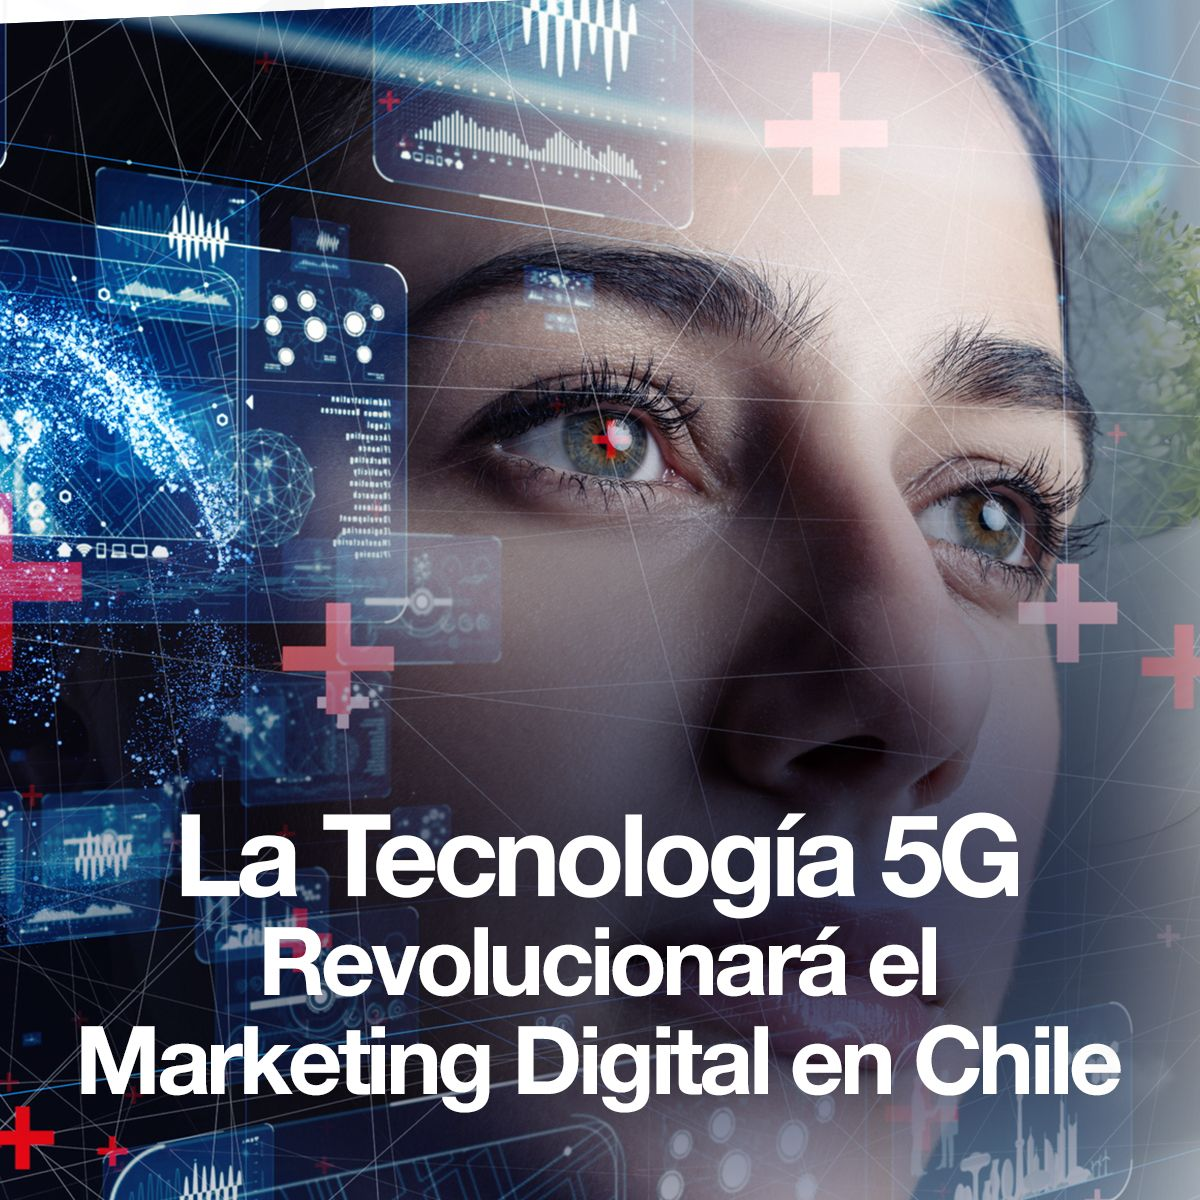 La Tecnología 5G Revolucionará el Marketing Digital en Chile